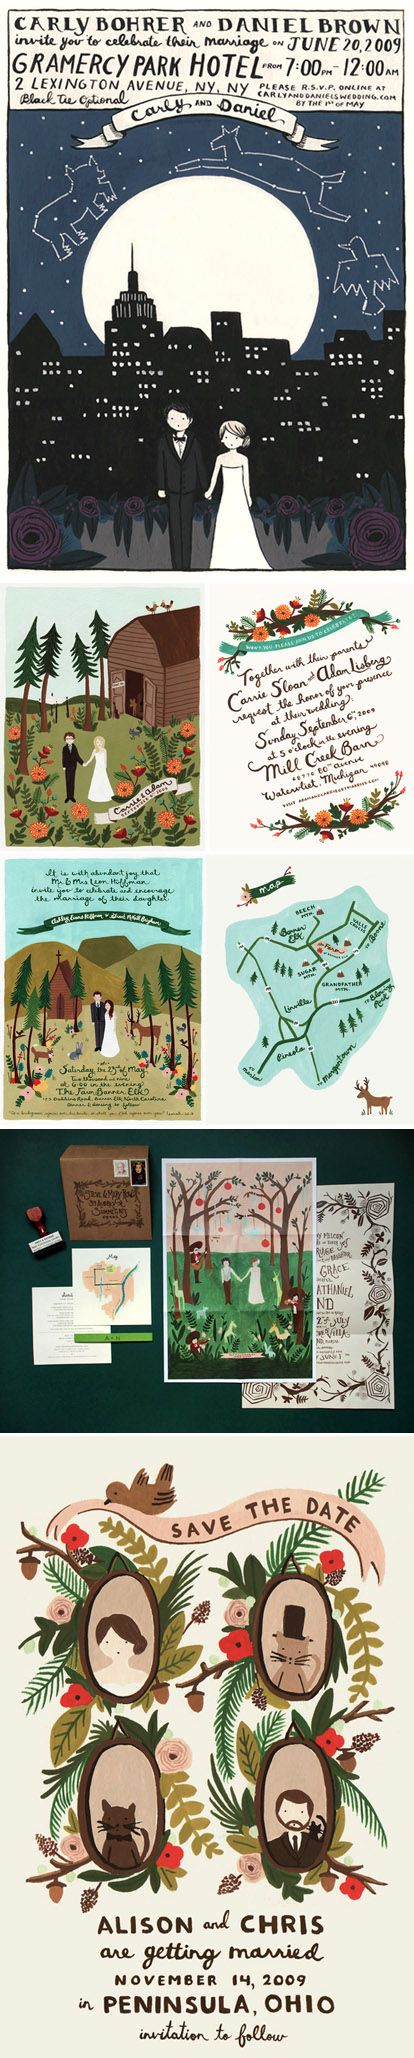 custom wedding invitations customizable wedding invitations Custom illustrated wedding invitations and save the dates by Anna Bond of Rifle Paper Company